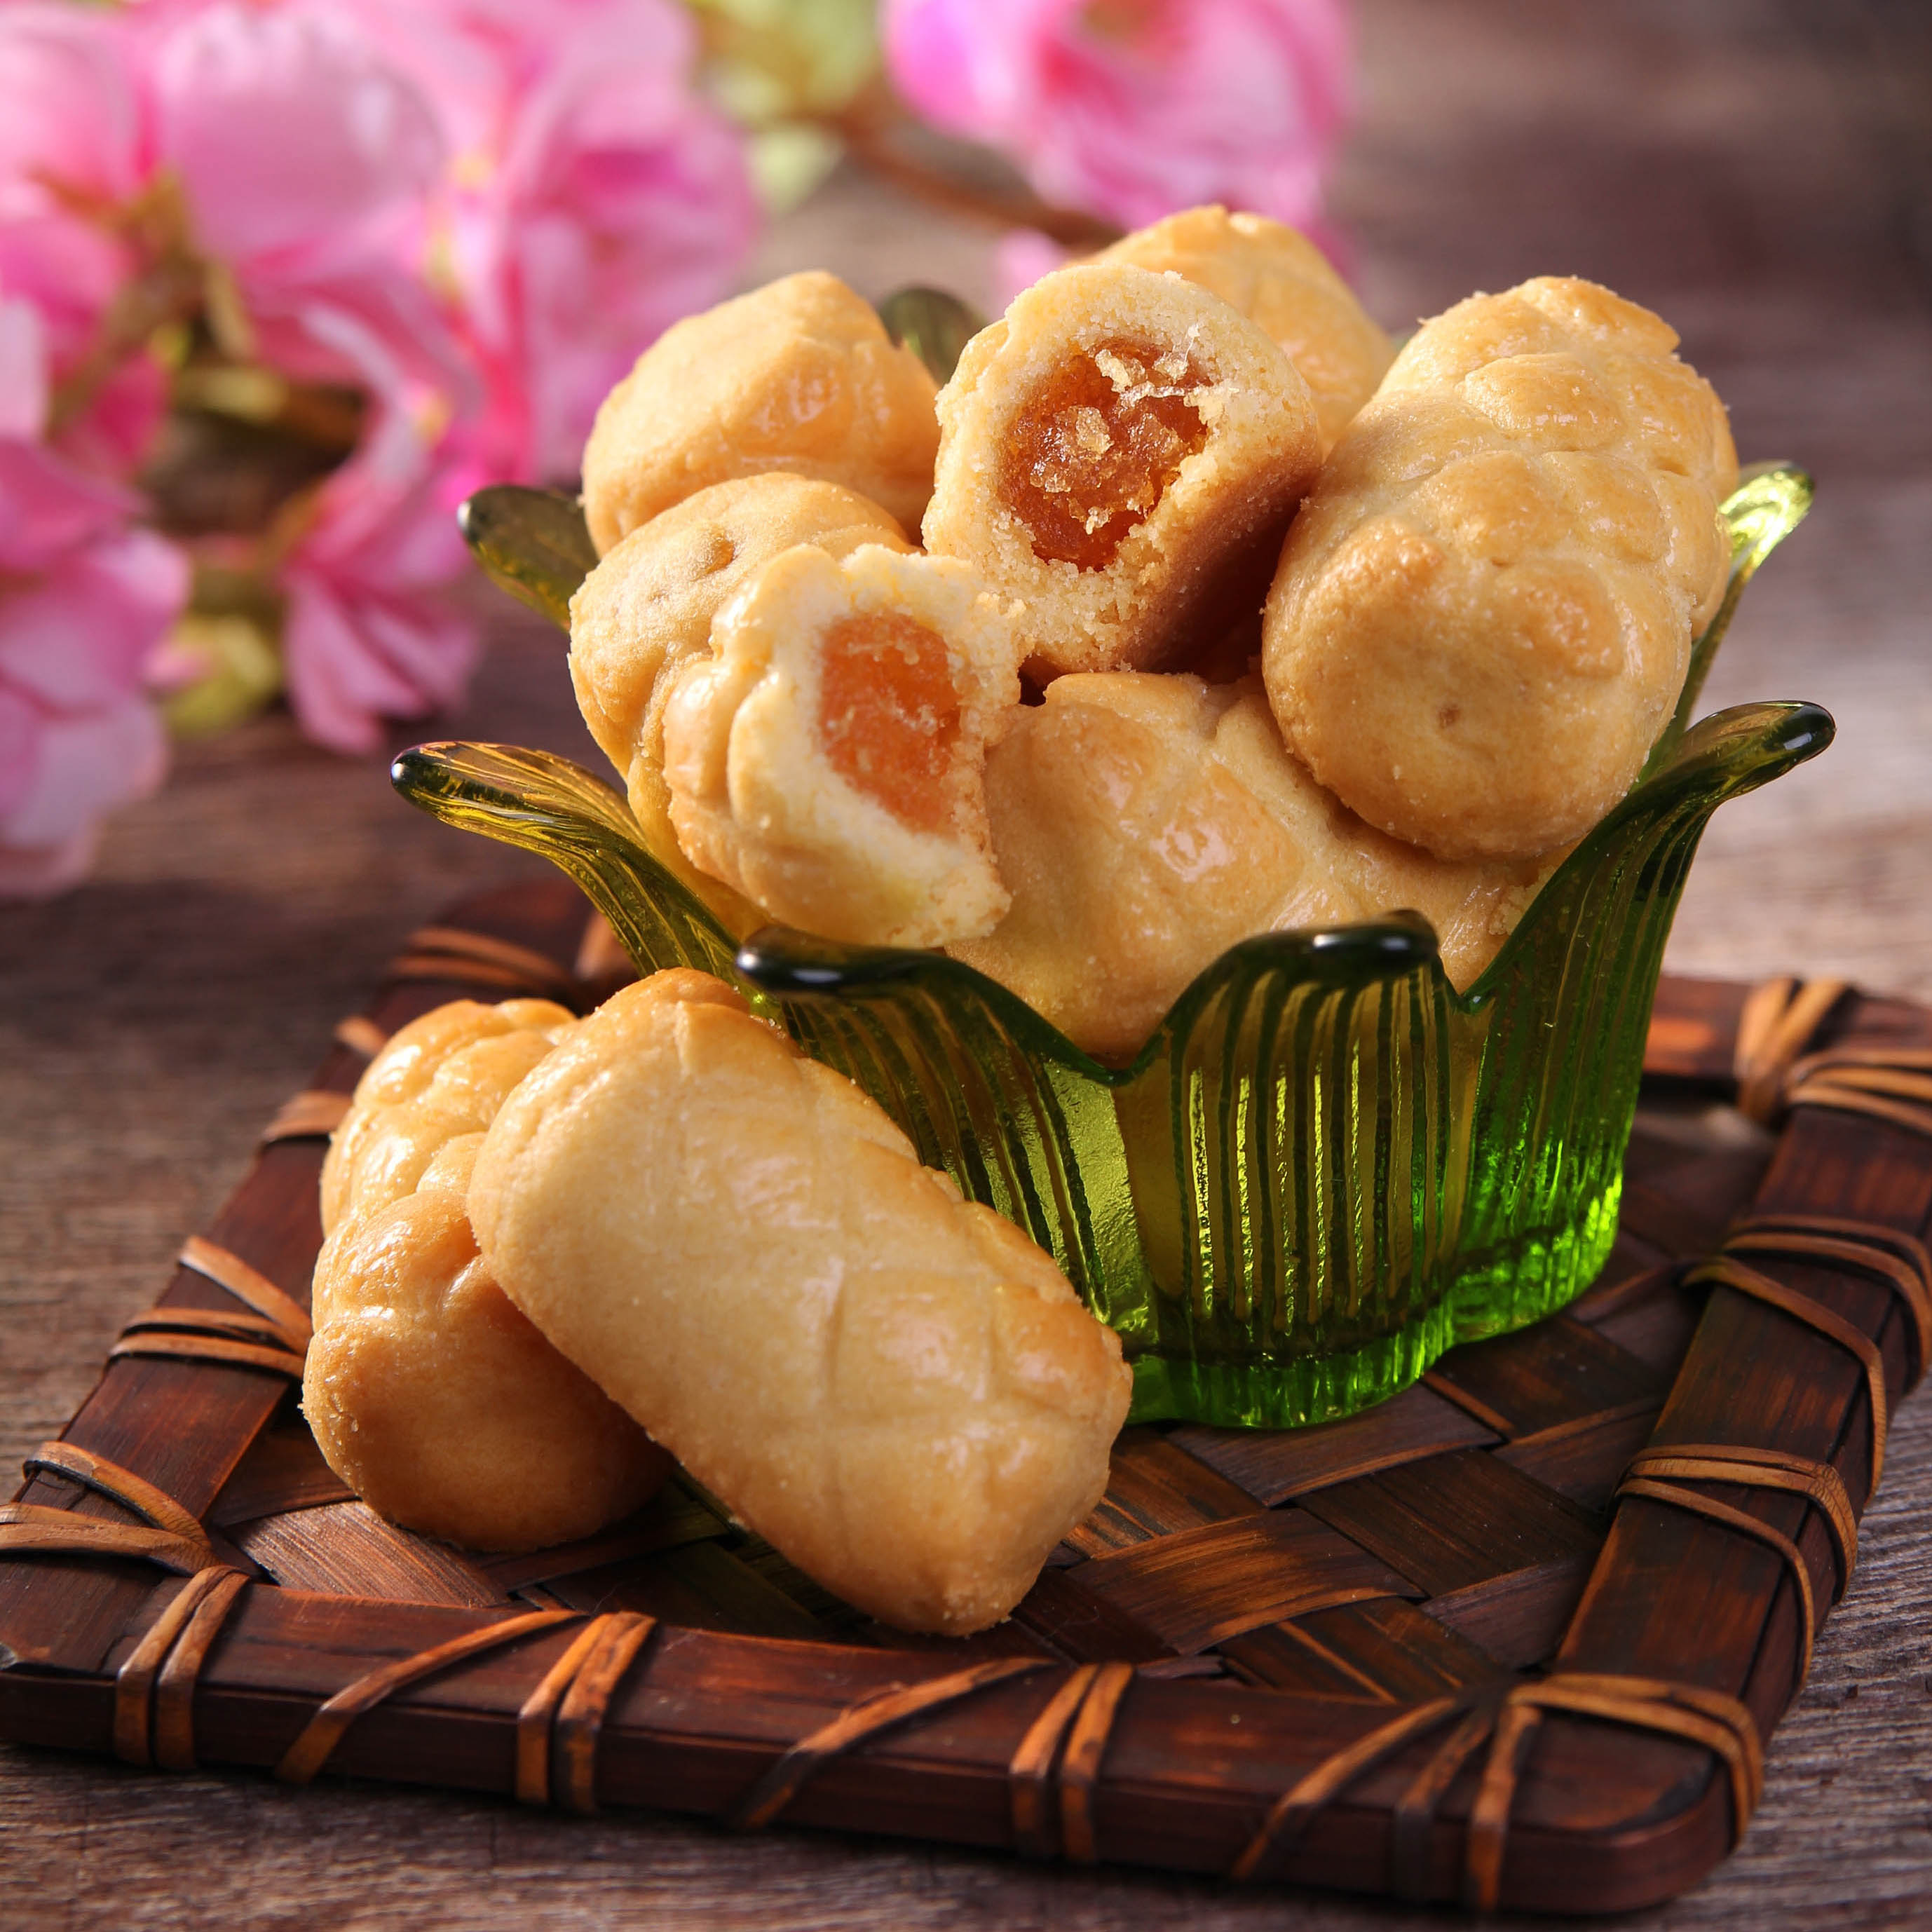 凤梨酥Carnival Pineapple Cookies